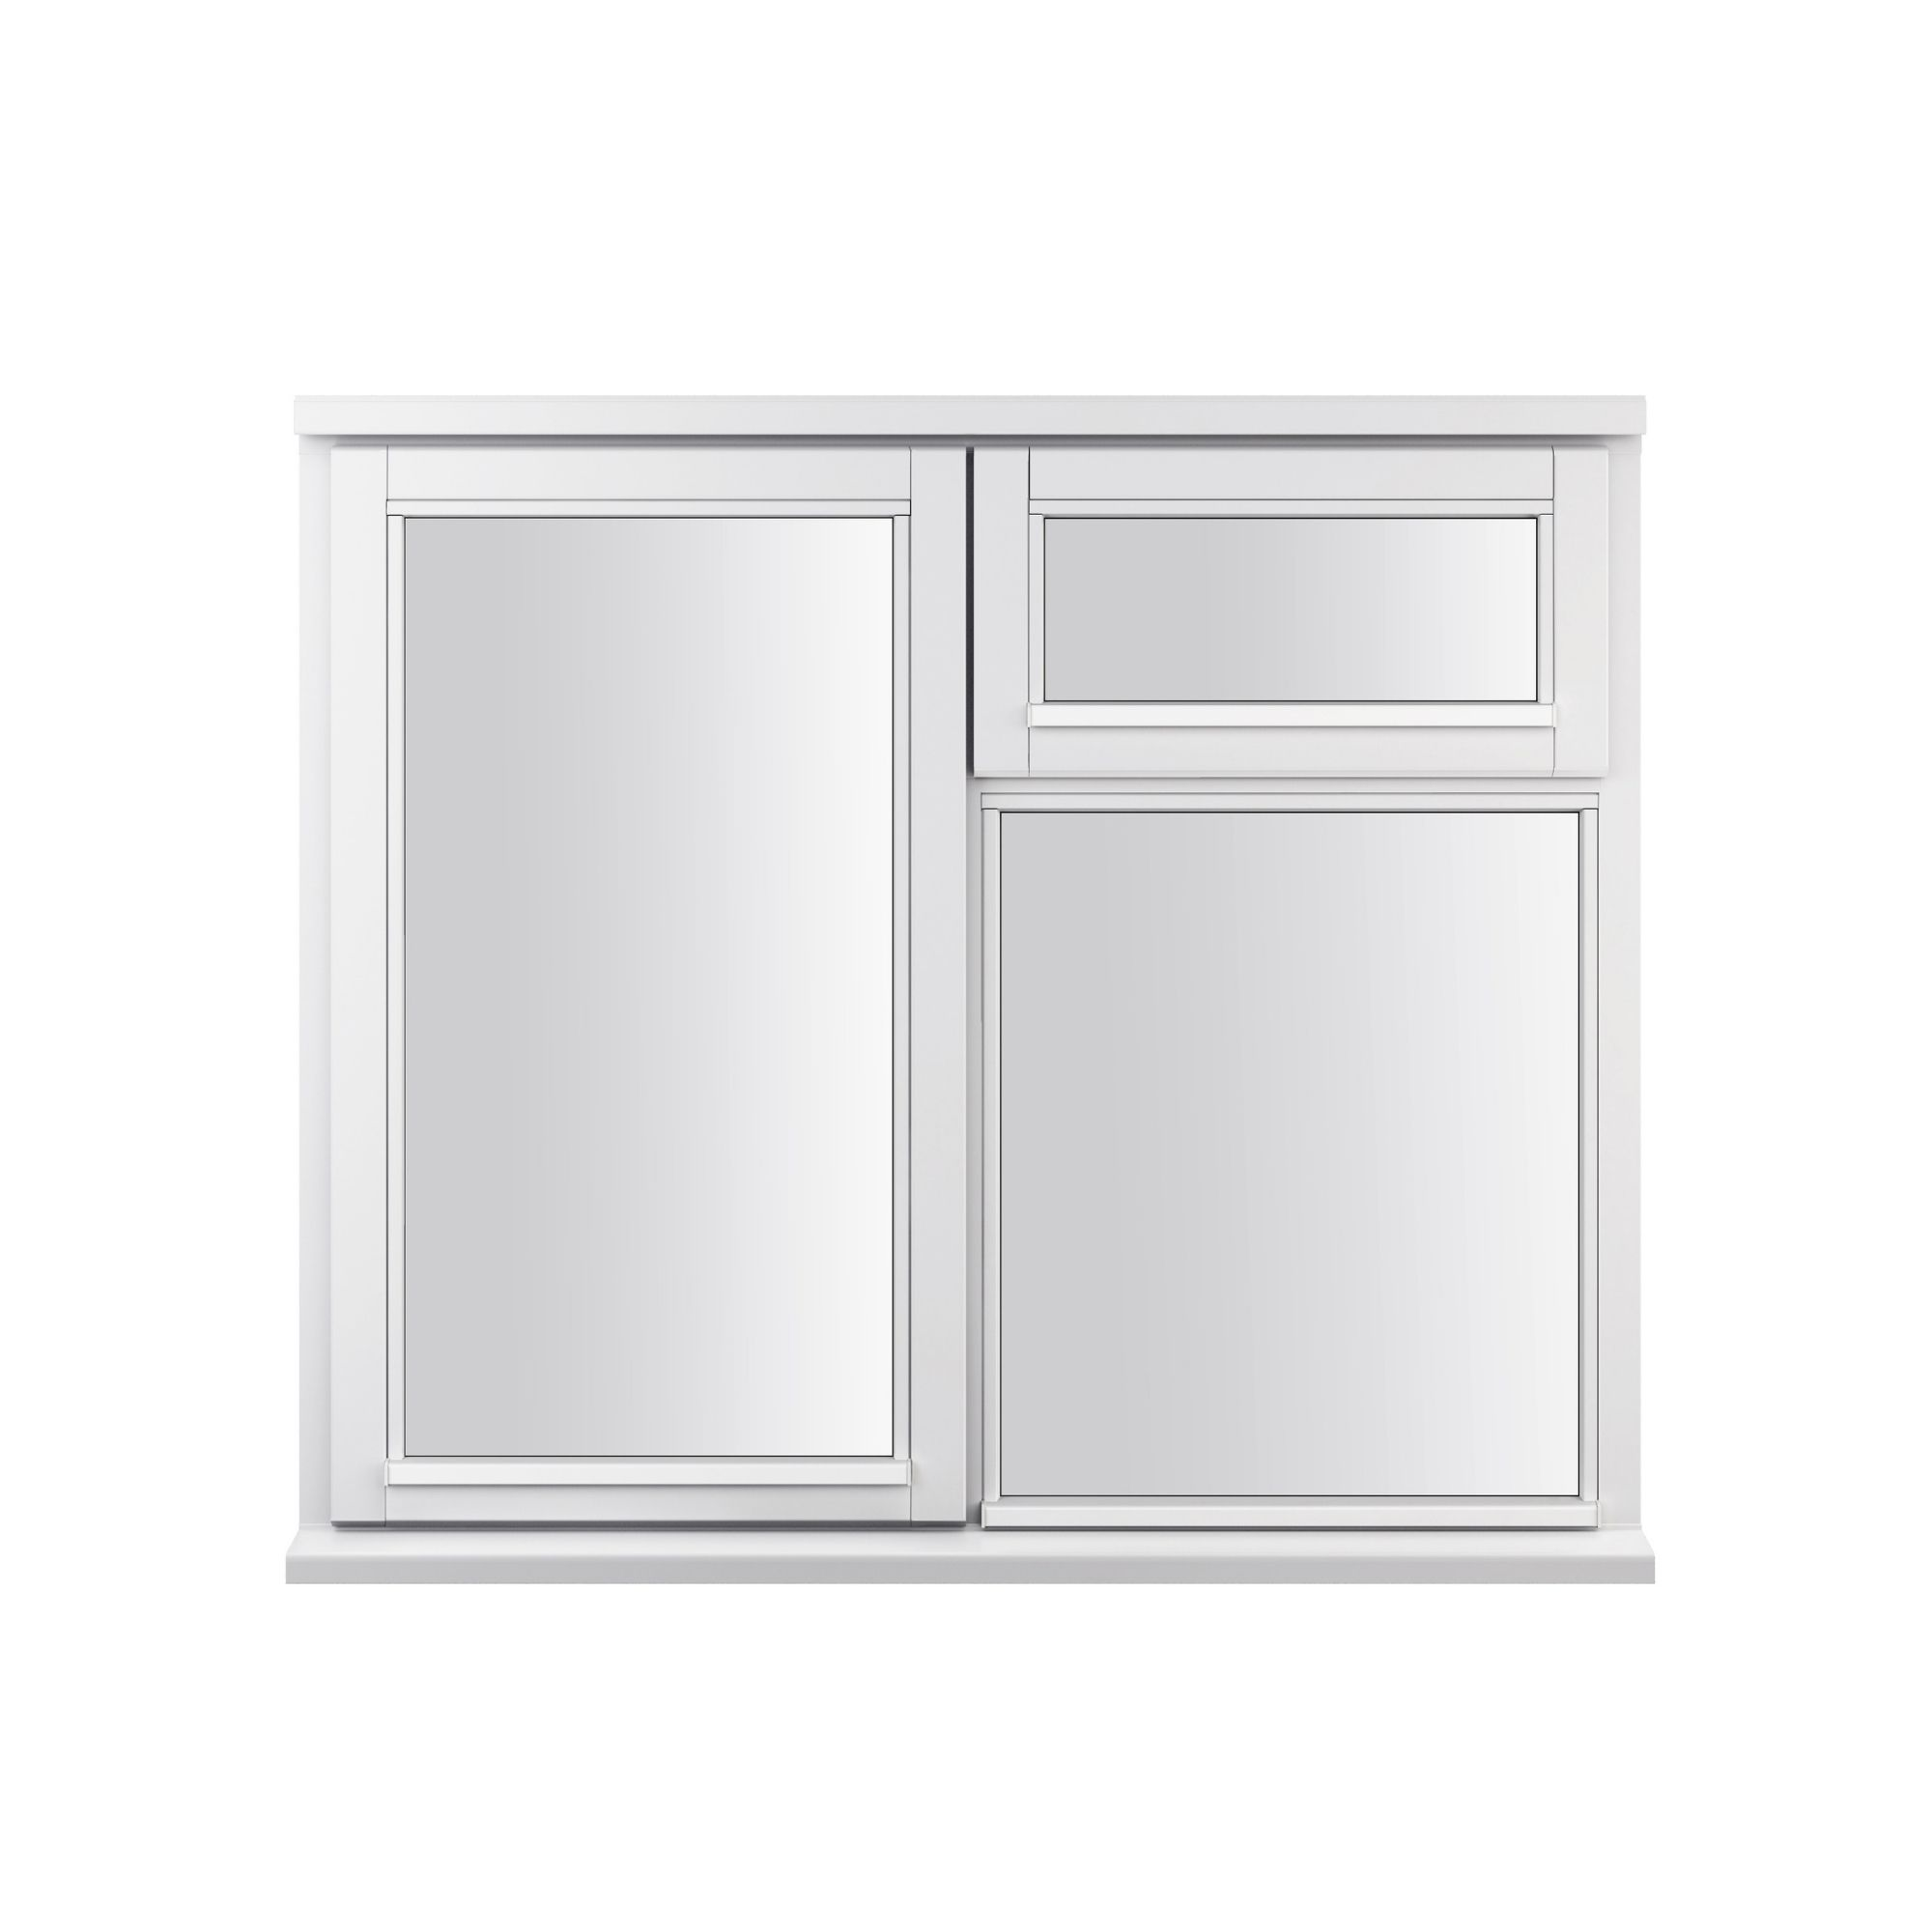 Double Hung Window Security Bar : Double glazed timber rh side hung top casement